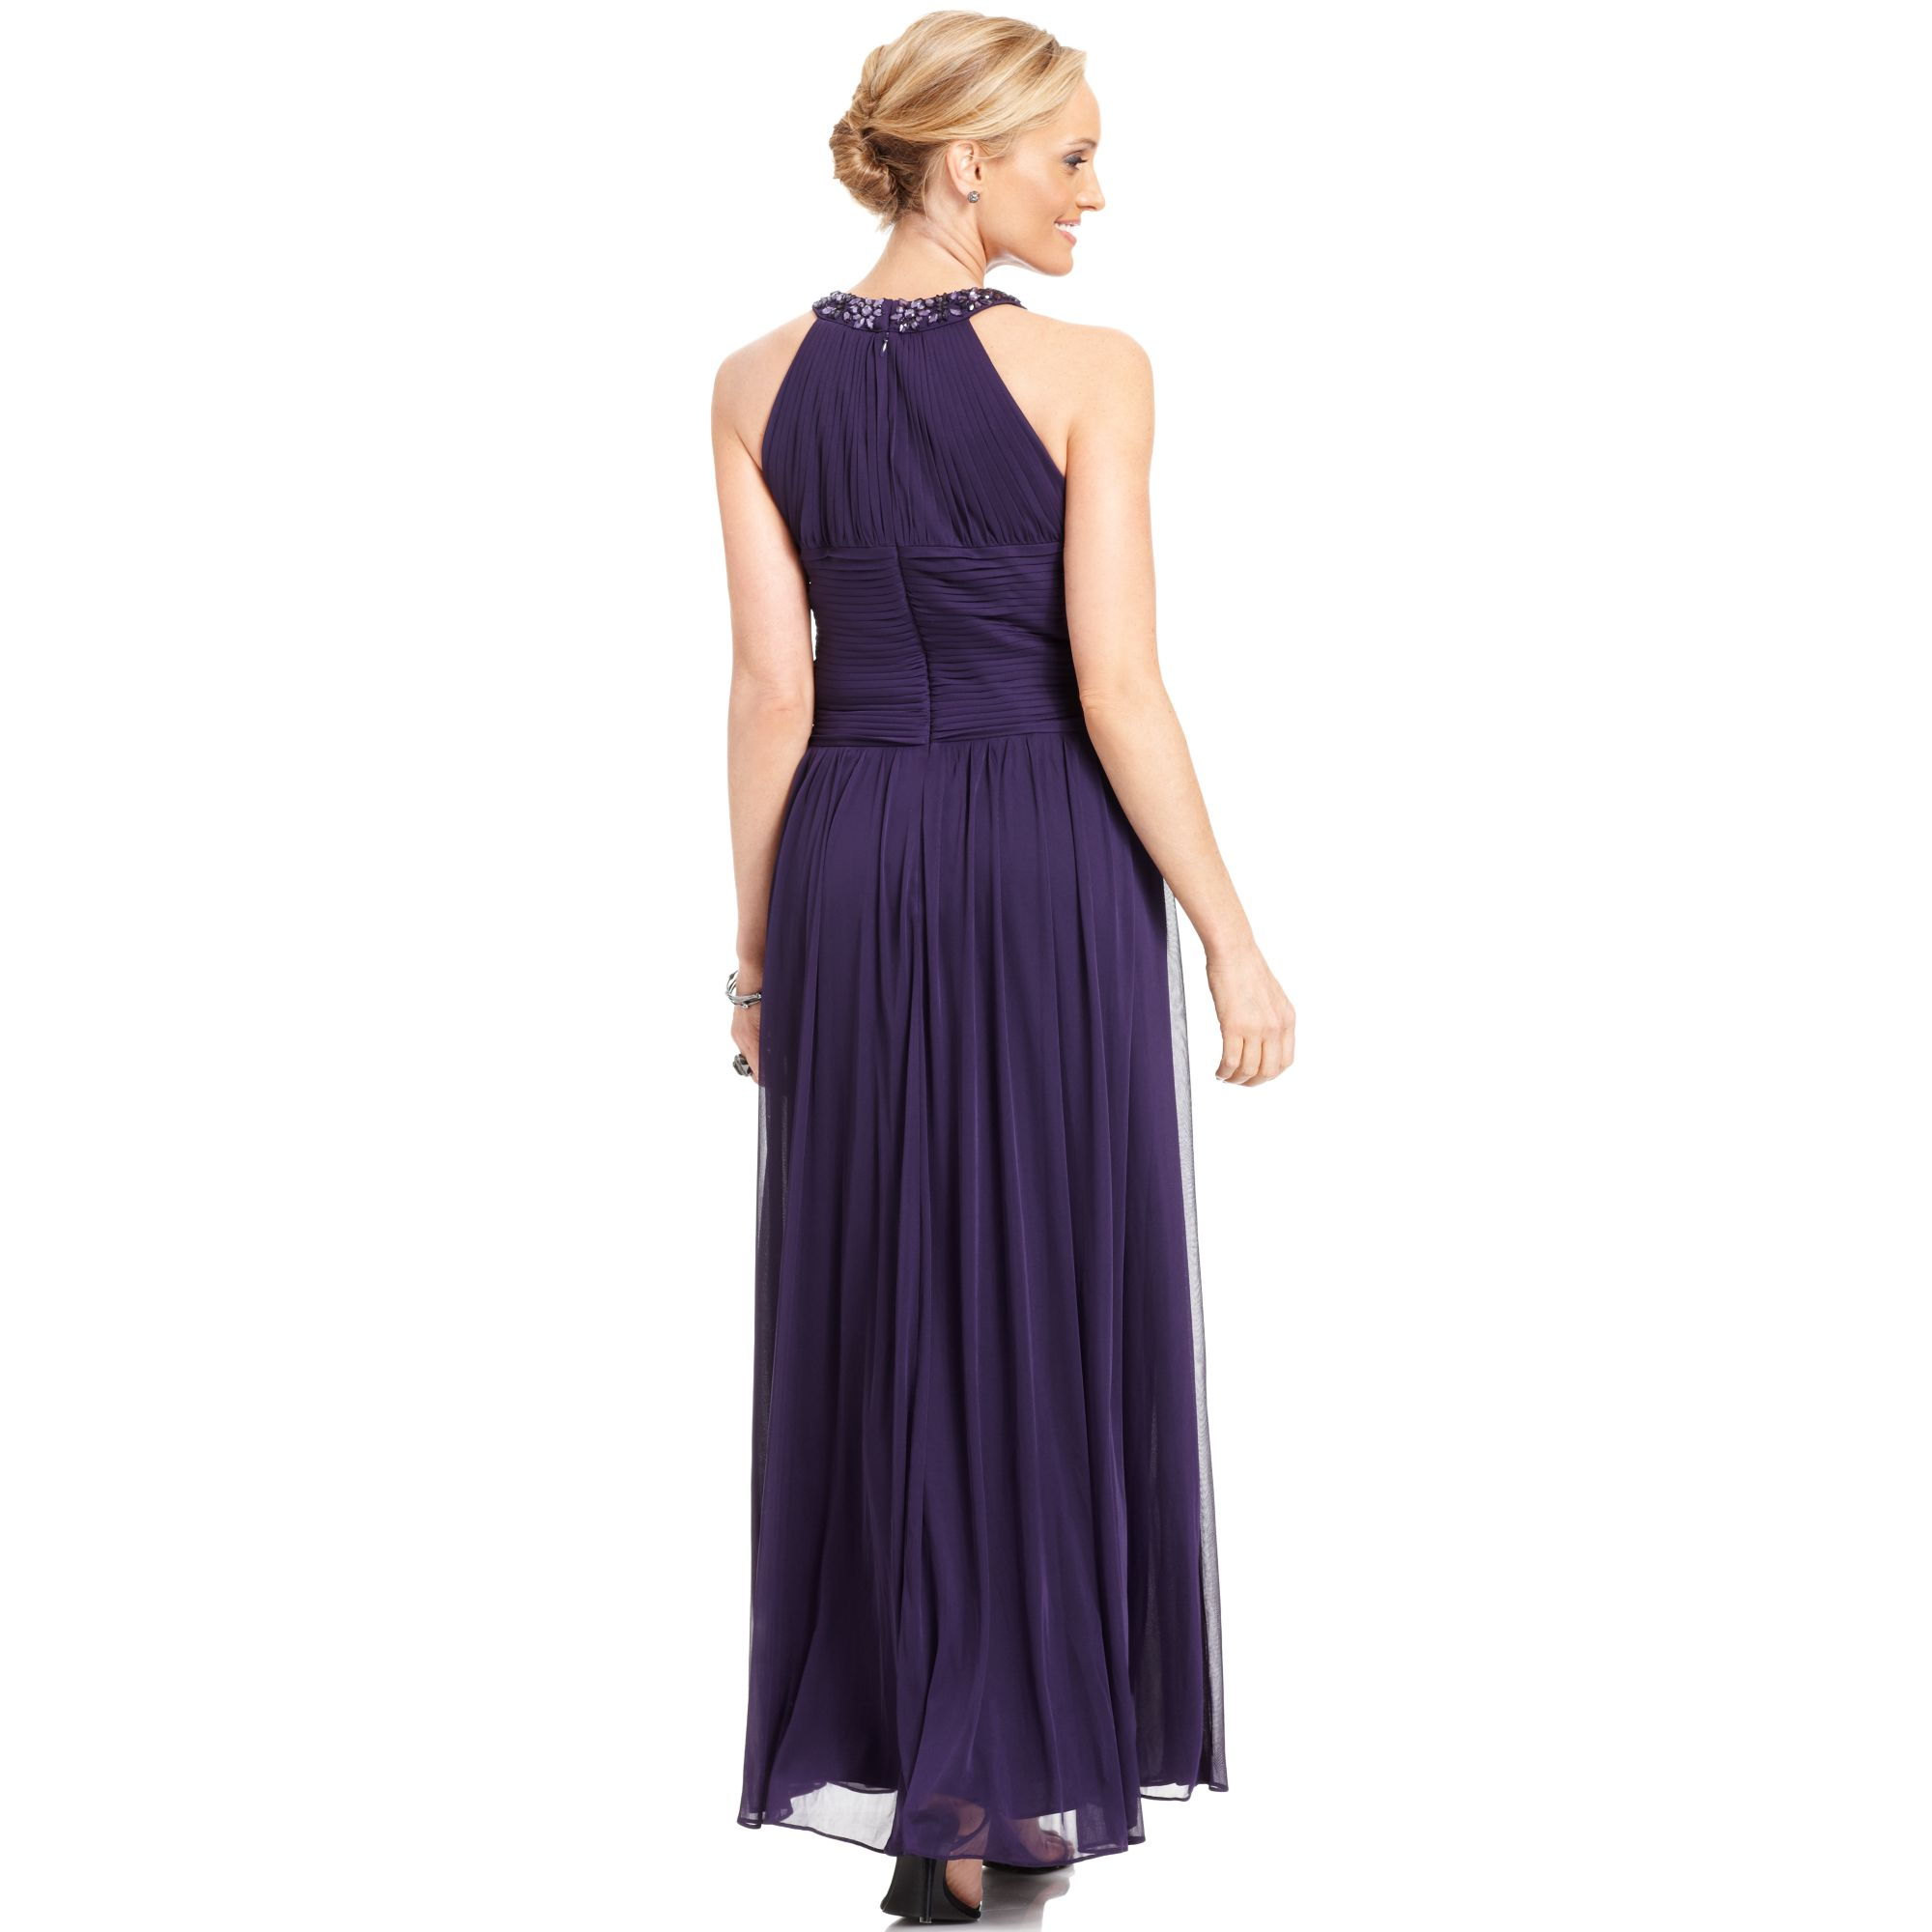 c7e4a8103c Source https   www.lyst.co.uk clothing alex-evenings-sleeveless-pleated-gown -and-shawl-purple